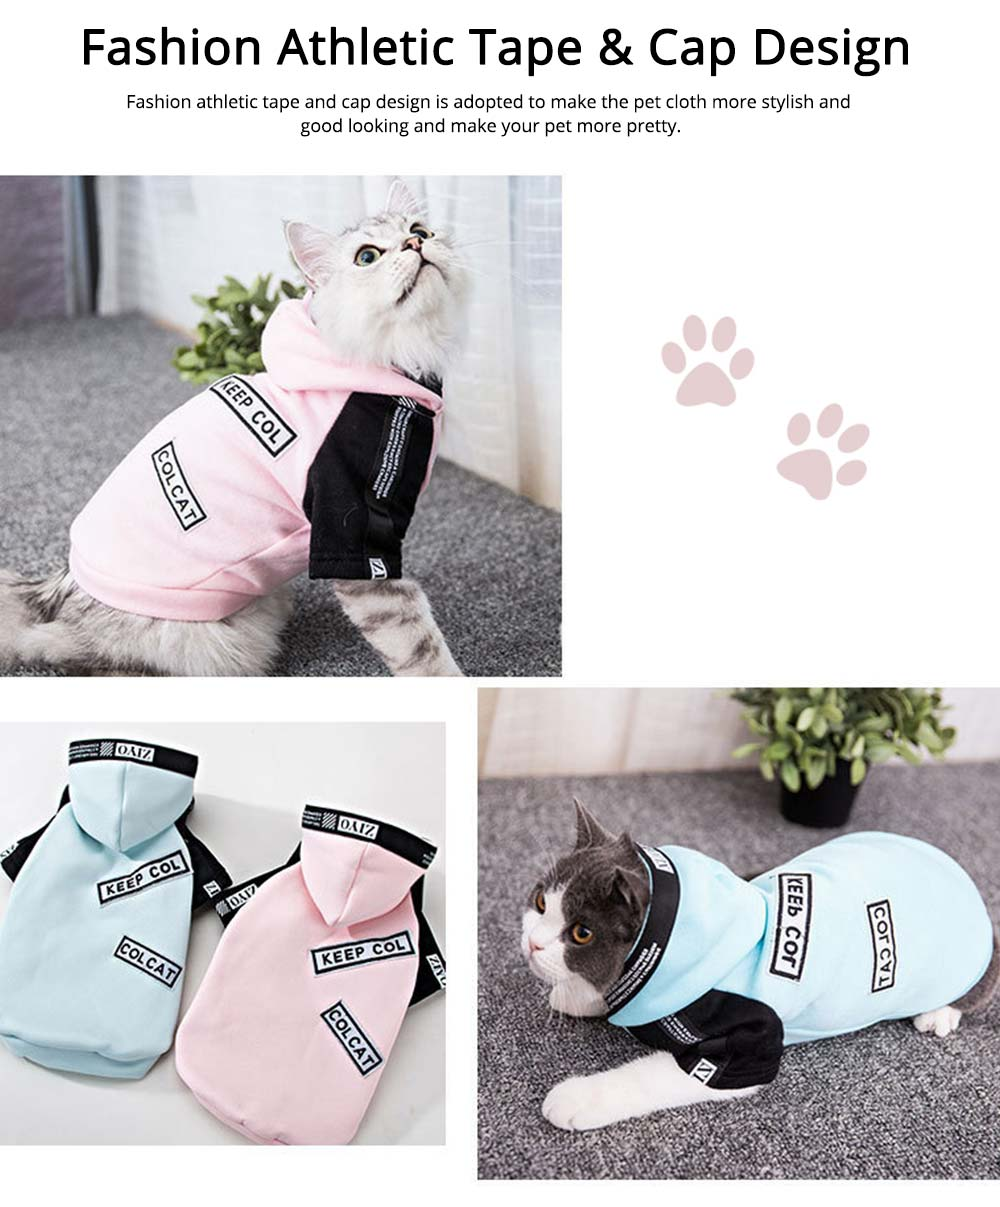 Milk Silk Cats Two-feet Pet Clothes, Stylish Pet Clothes Costume Apparel with Fashion Athletic Tape Especially for Cats, Skin Friendly  3